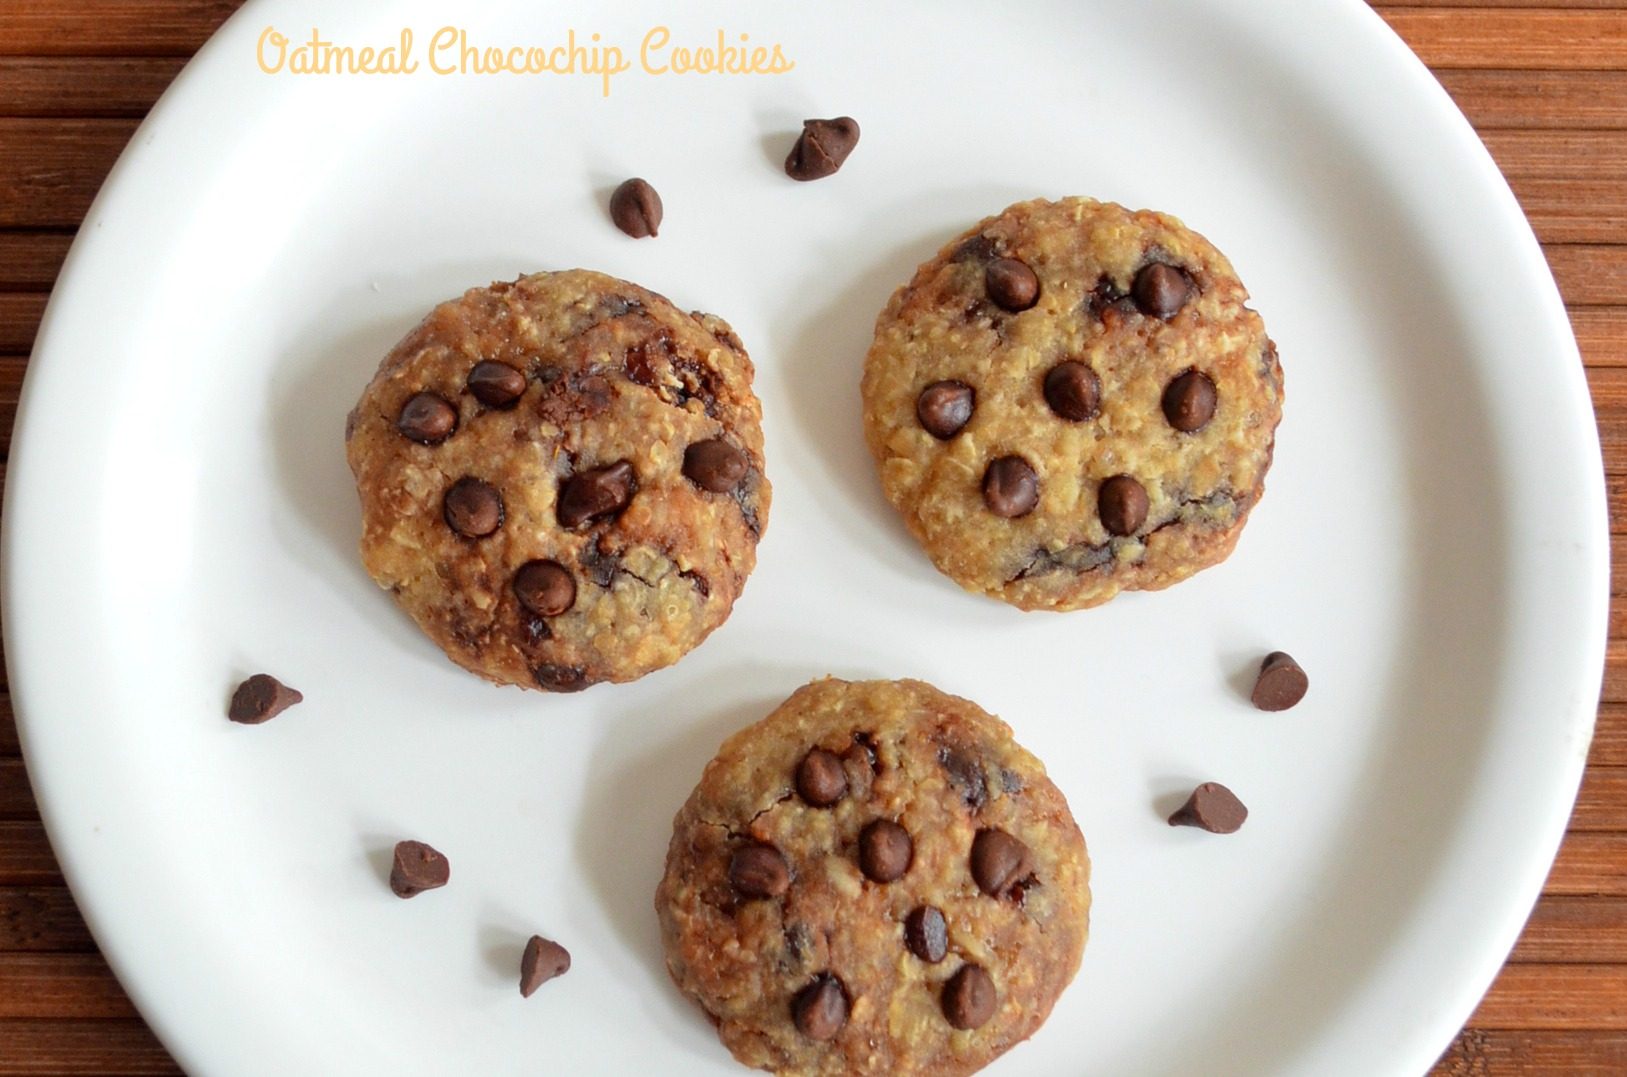 Eggless Oatmeal Cookies Recipe with Chocolate Chips